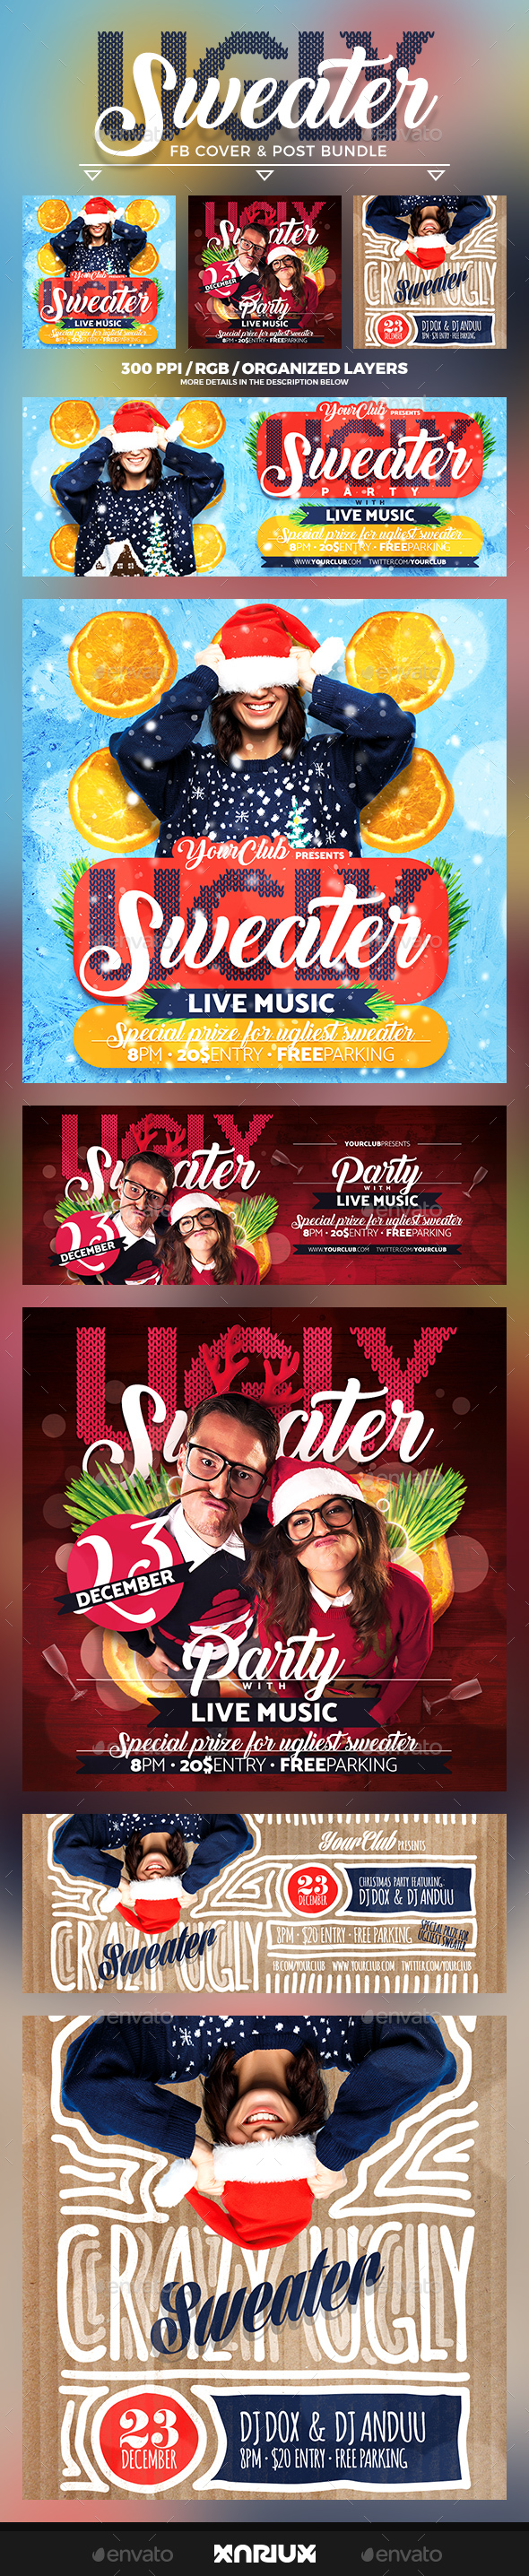 GraphicRiver Ugly Sweater Facebook Cover Bundle 21006901